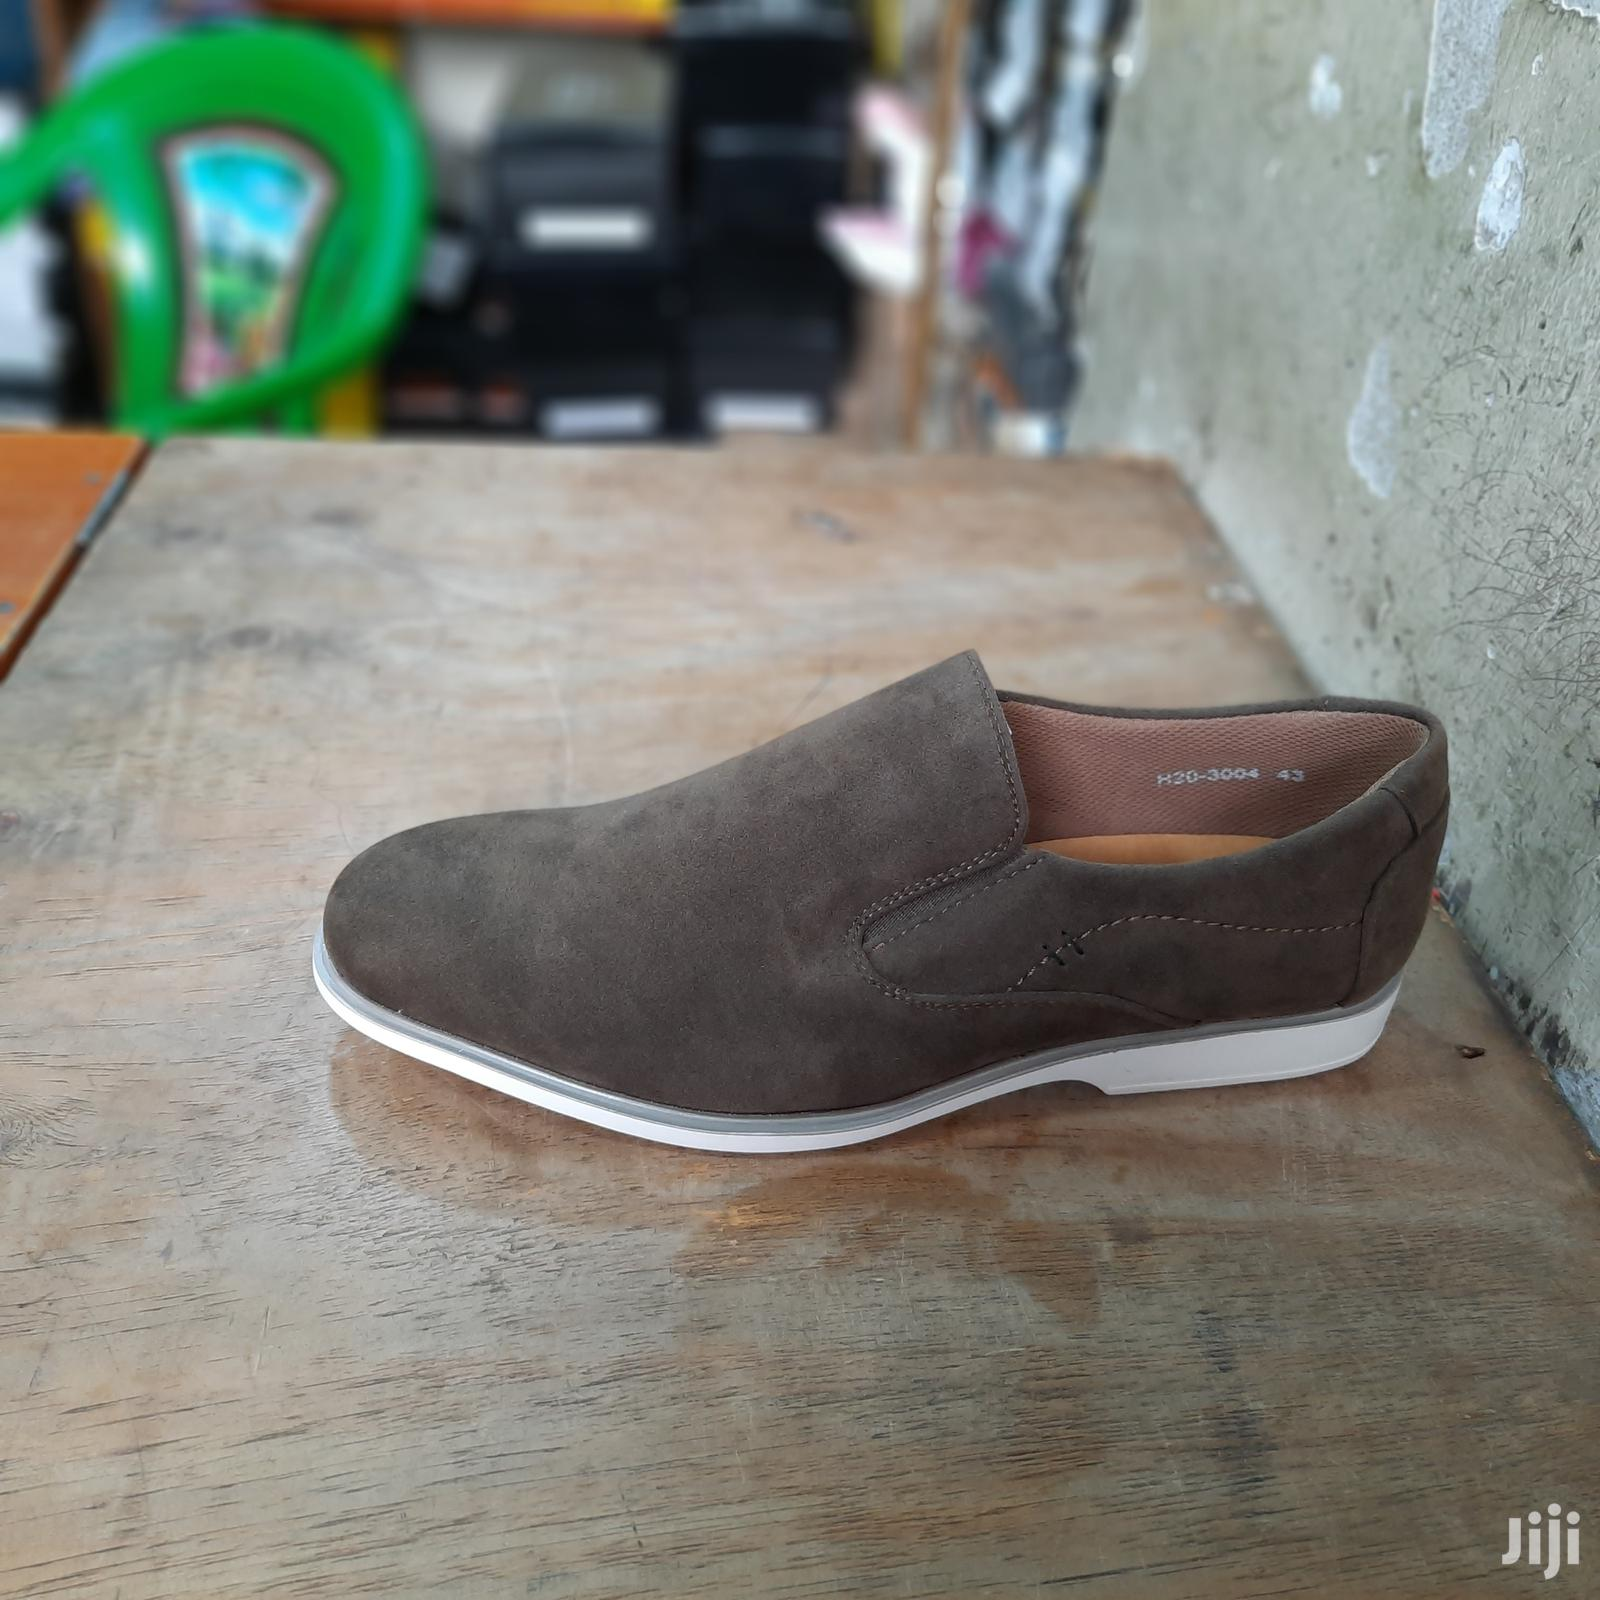 Suede Leather Brown Italy Men Shoes Oxford Casual Classic Sn | Shoes for sale in Nairobi Central, Nairobi, Kenya